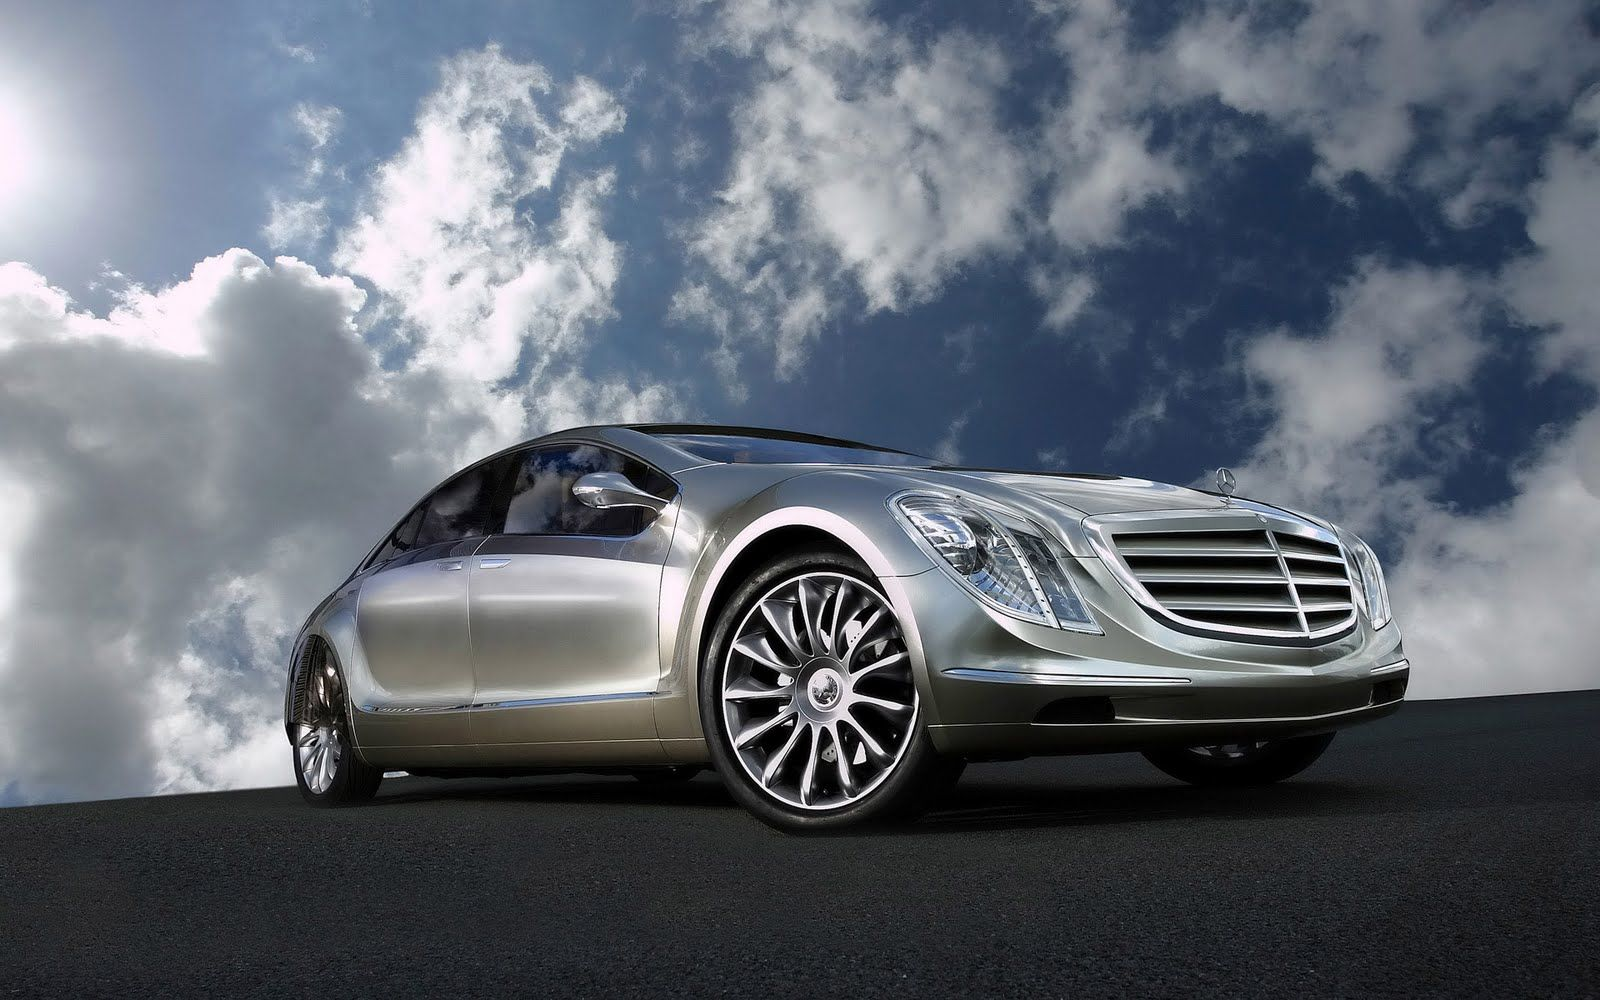 MercedesBenz F This Is A Cool Car Take A Look At Alot More - Look at cool cars